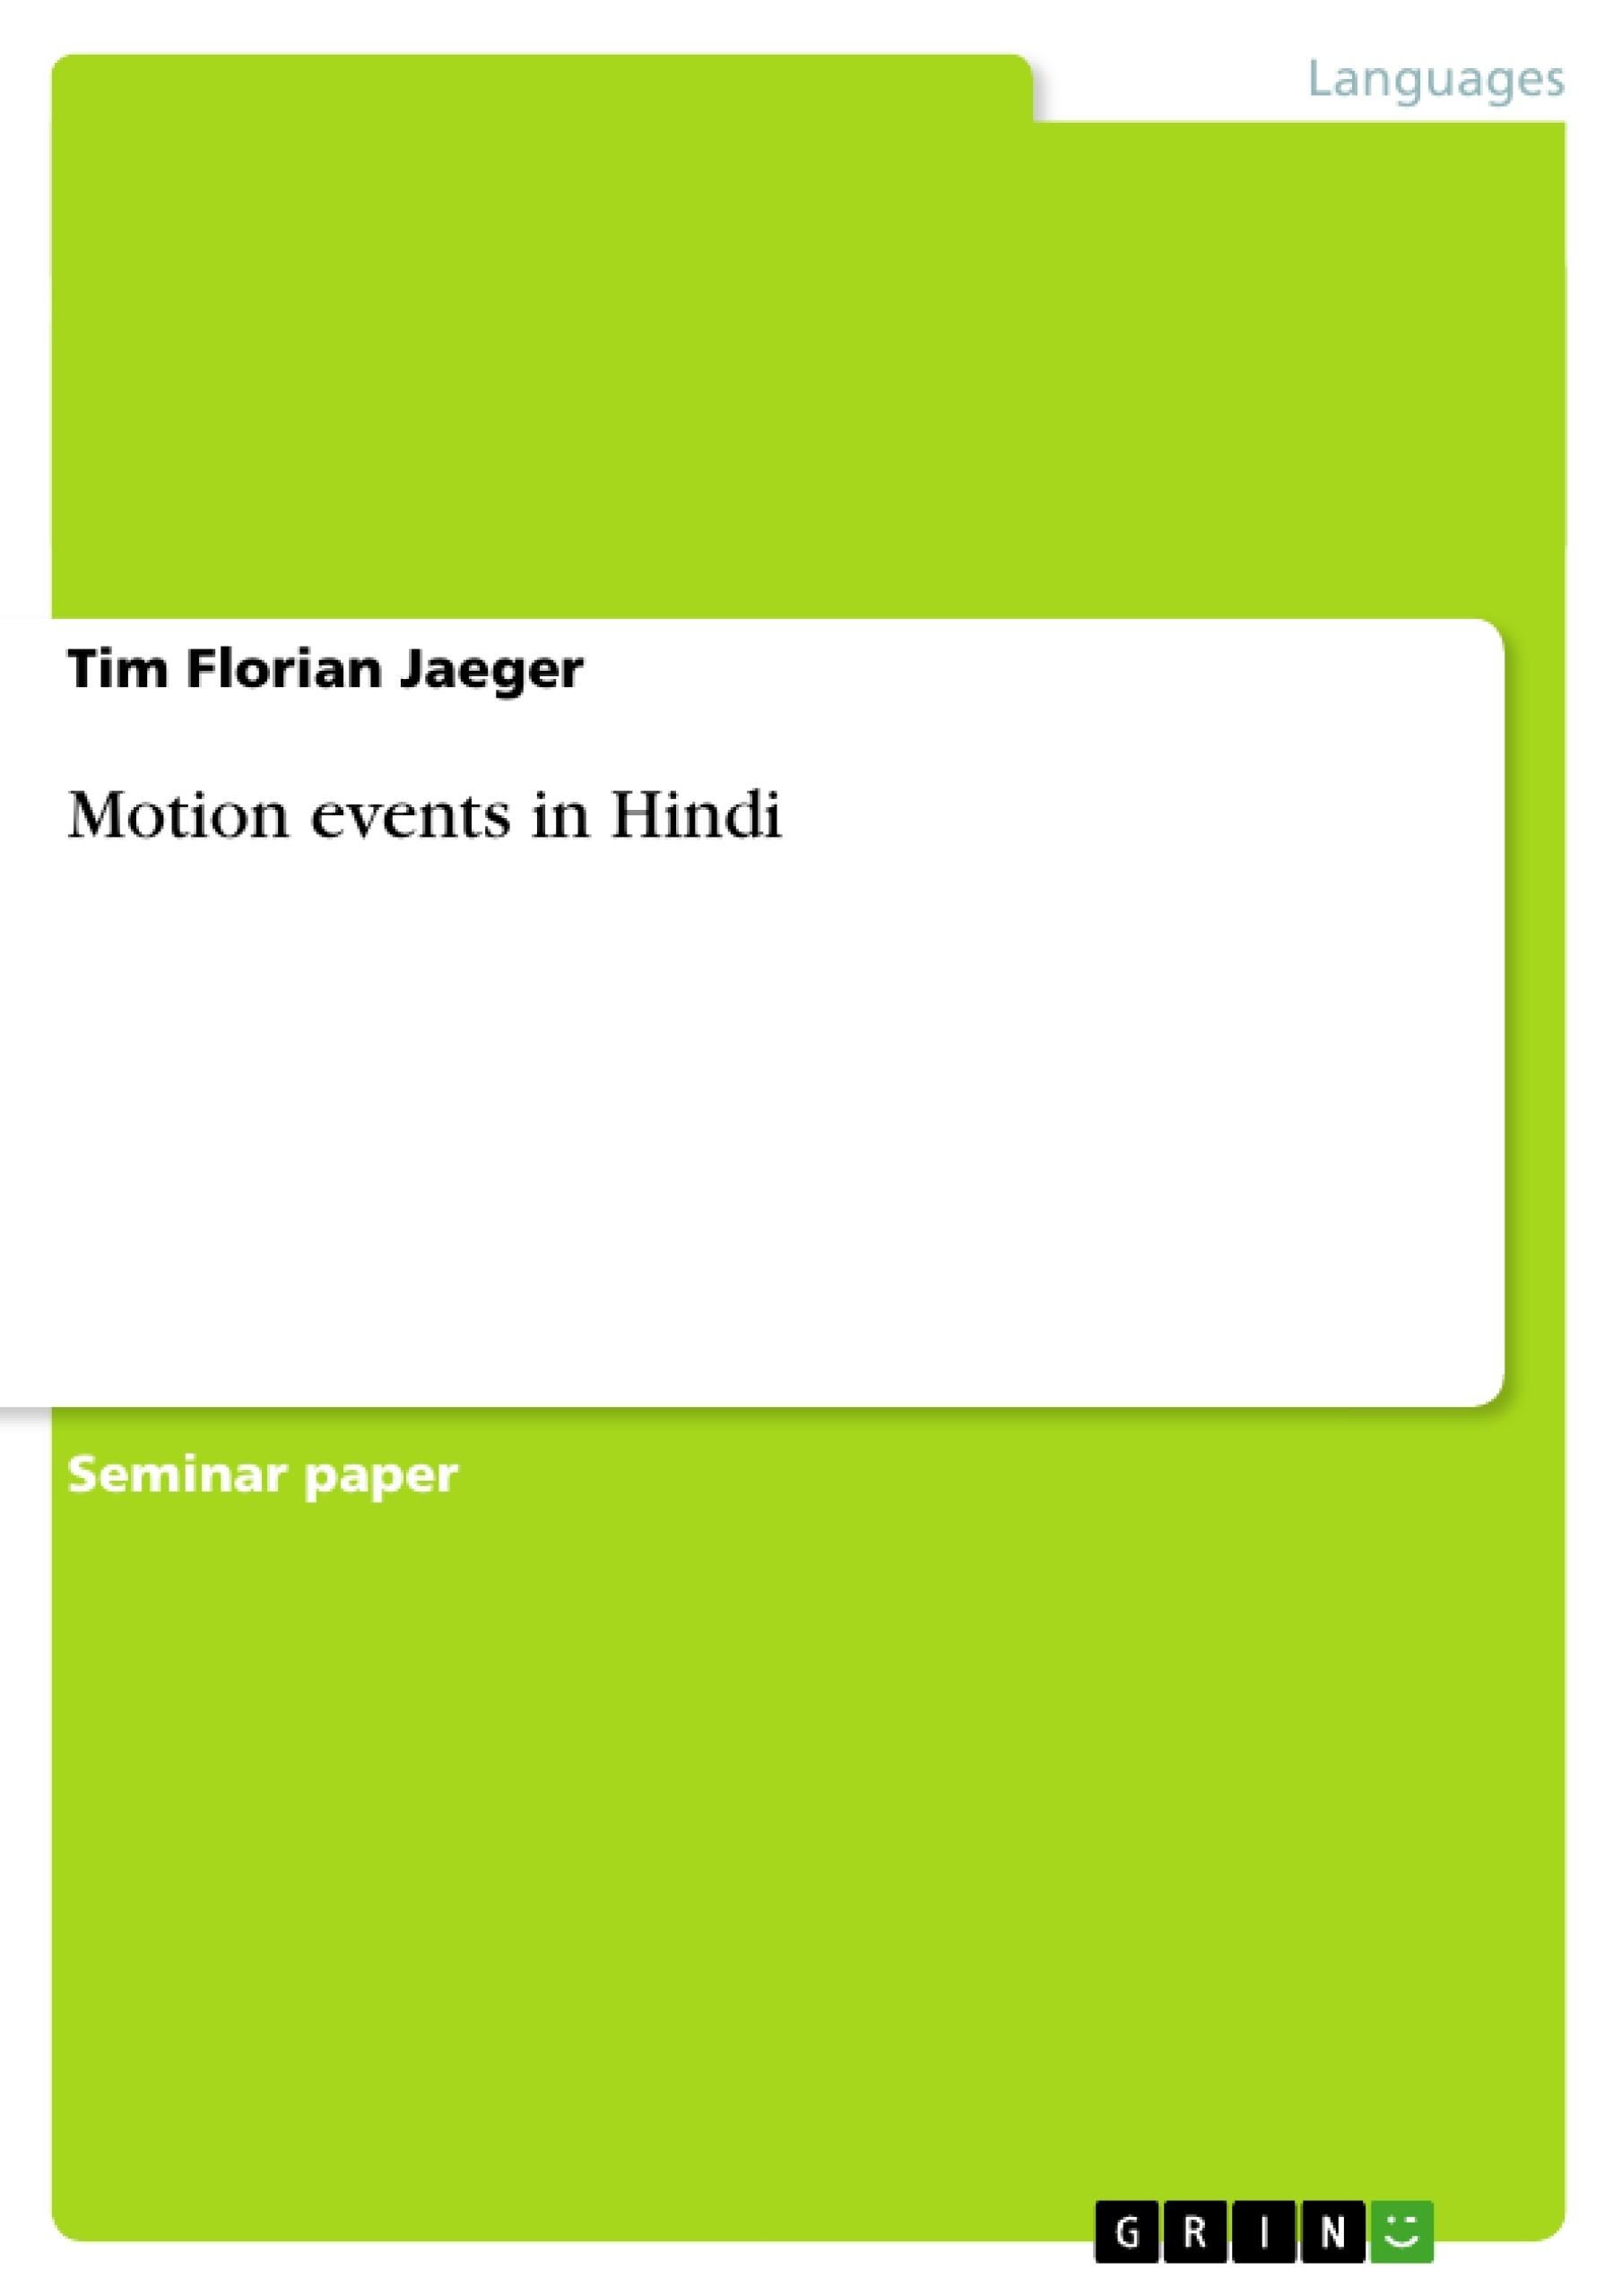 Title: Motion events in Hindi